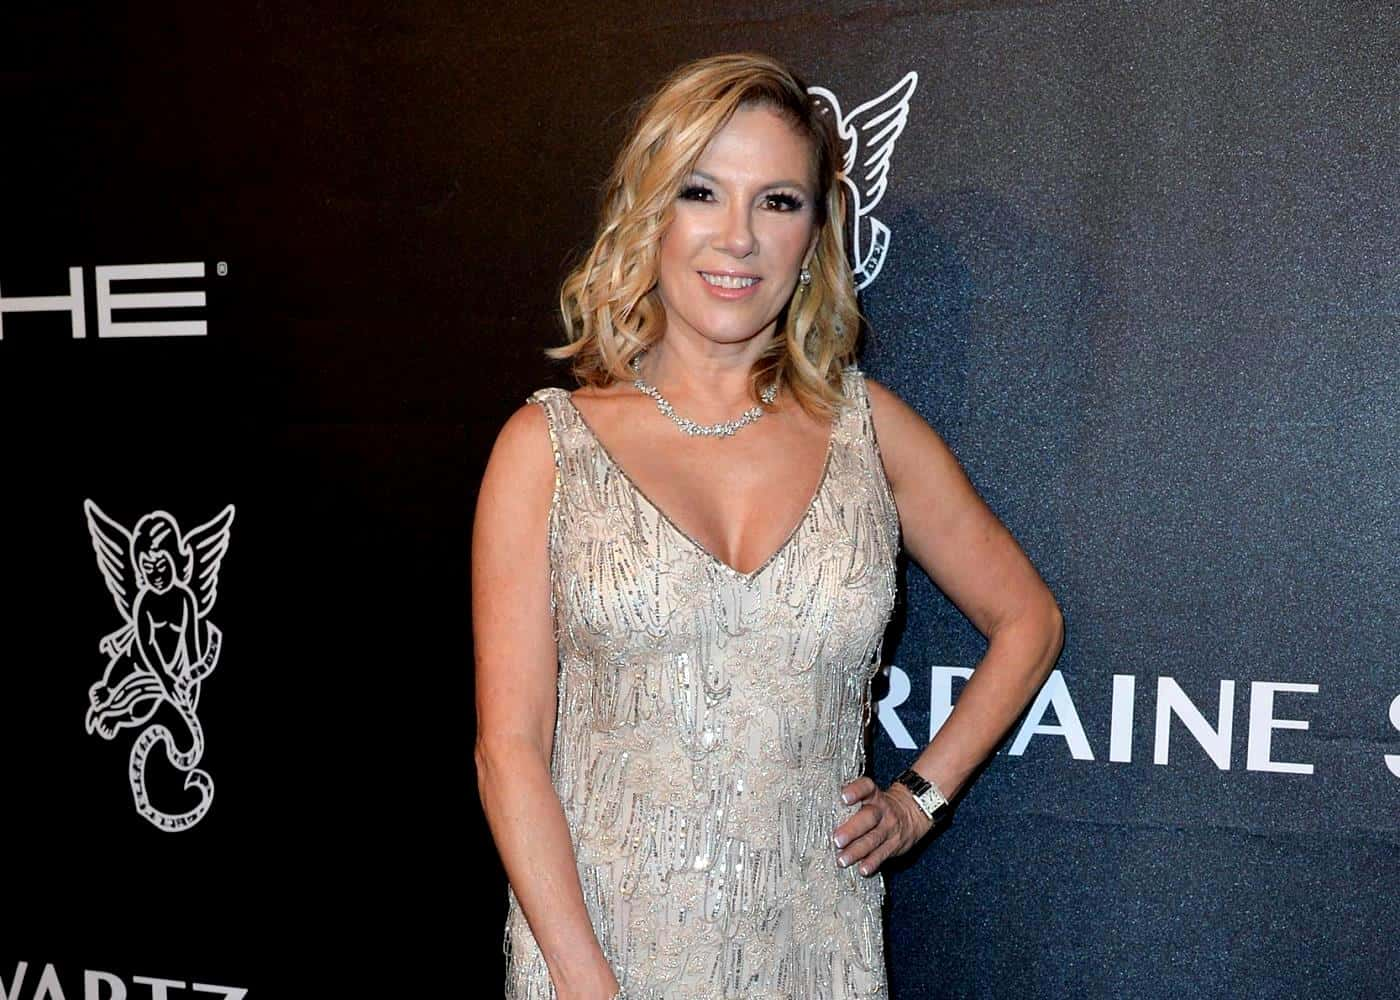 Is RHONY Star Ramona Singer on the Chopping Block Ahead of New Season?